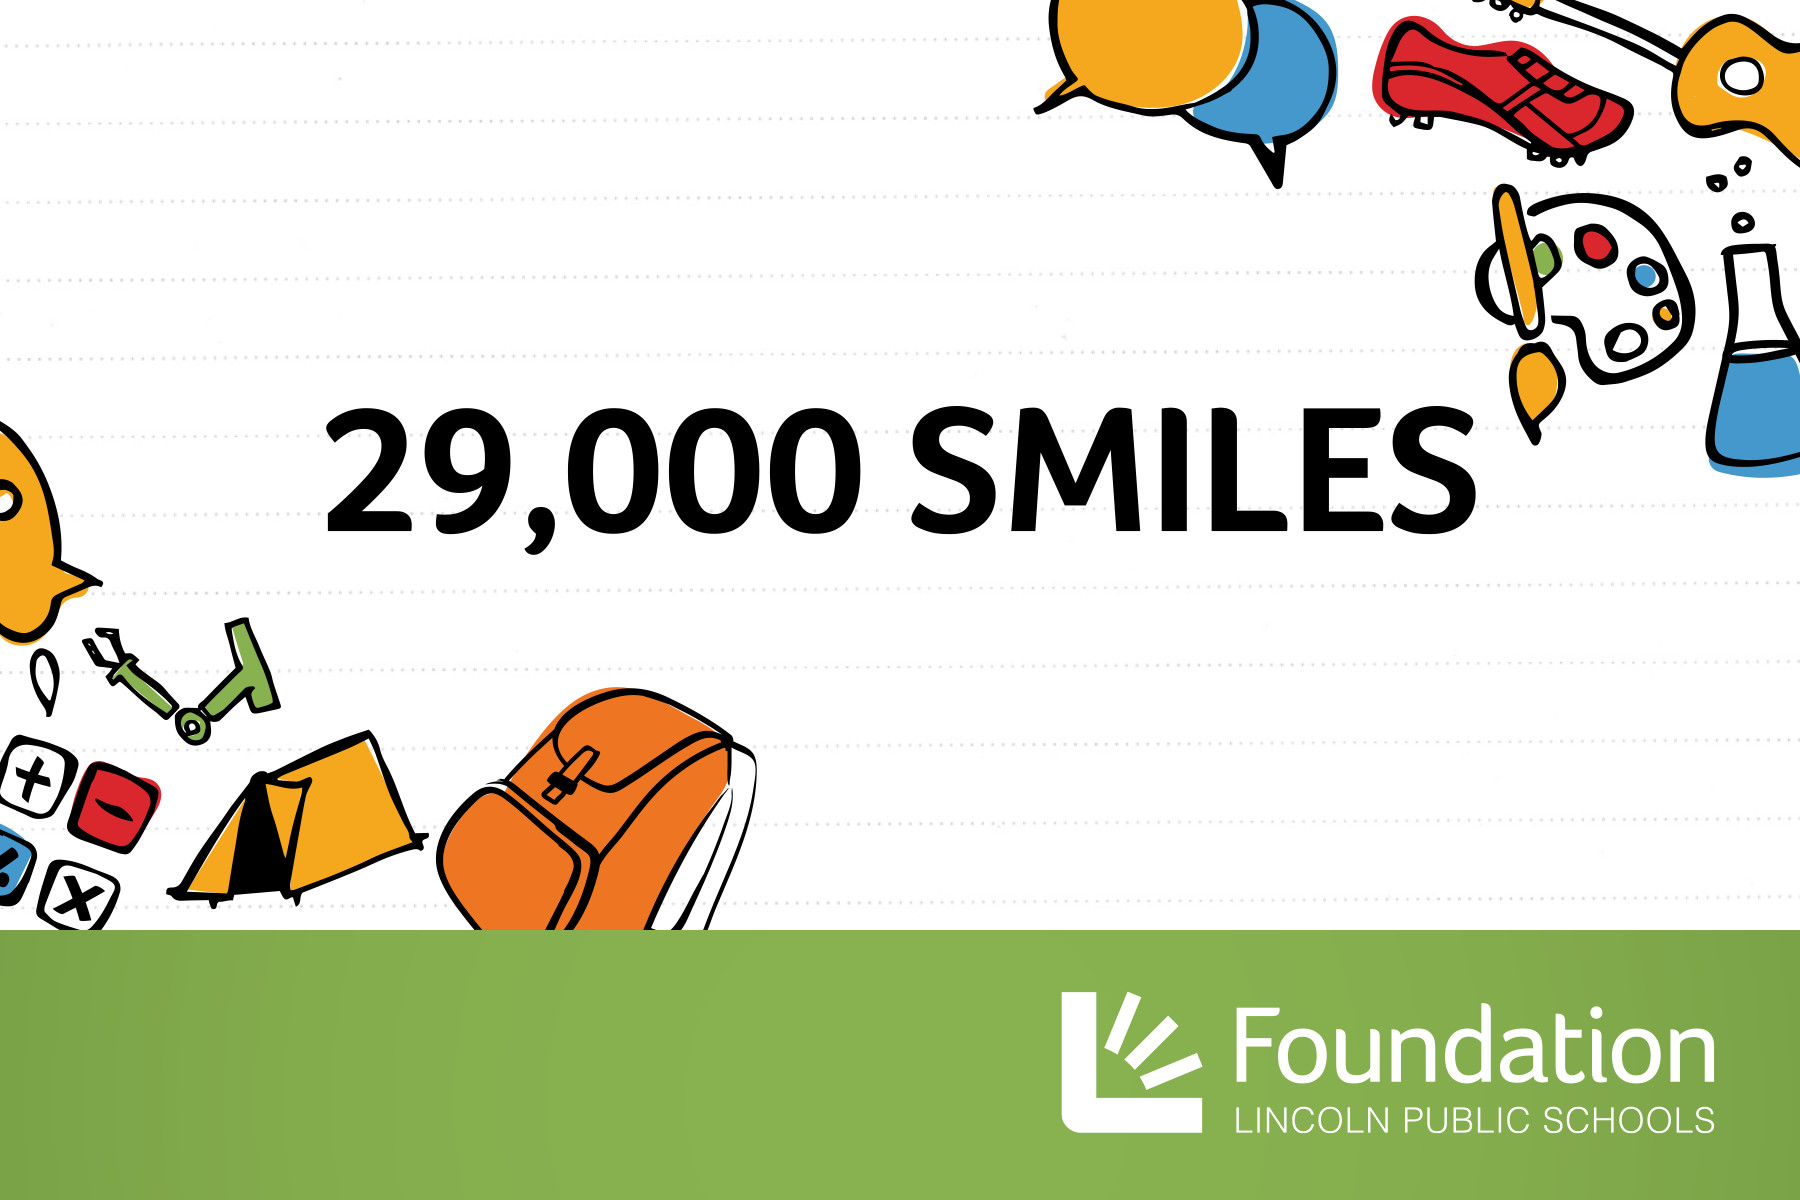 2015 Fall Appeal - Next Level Learning